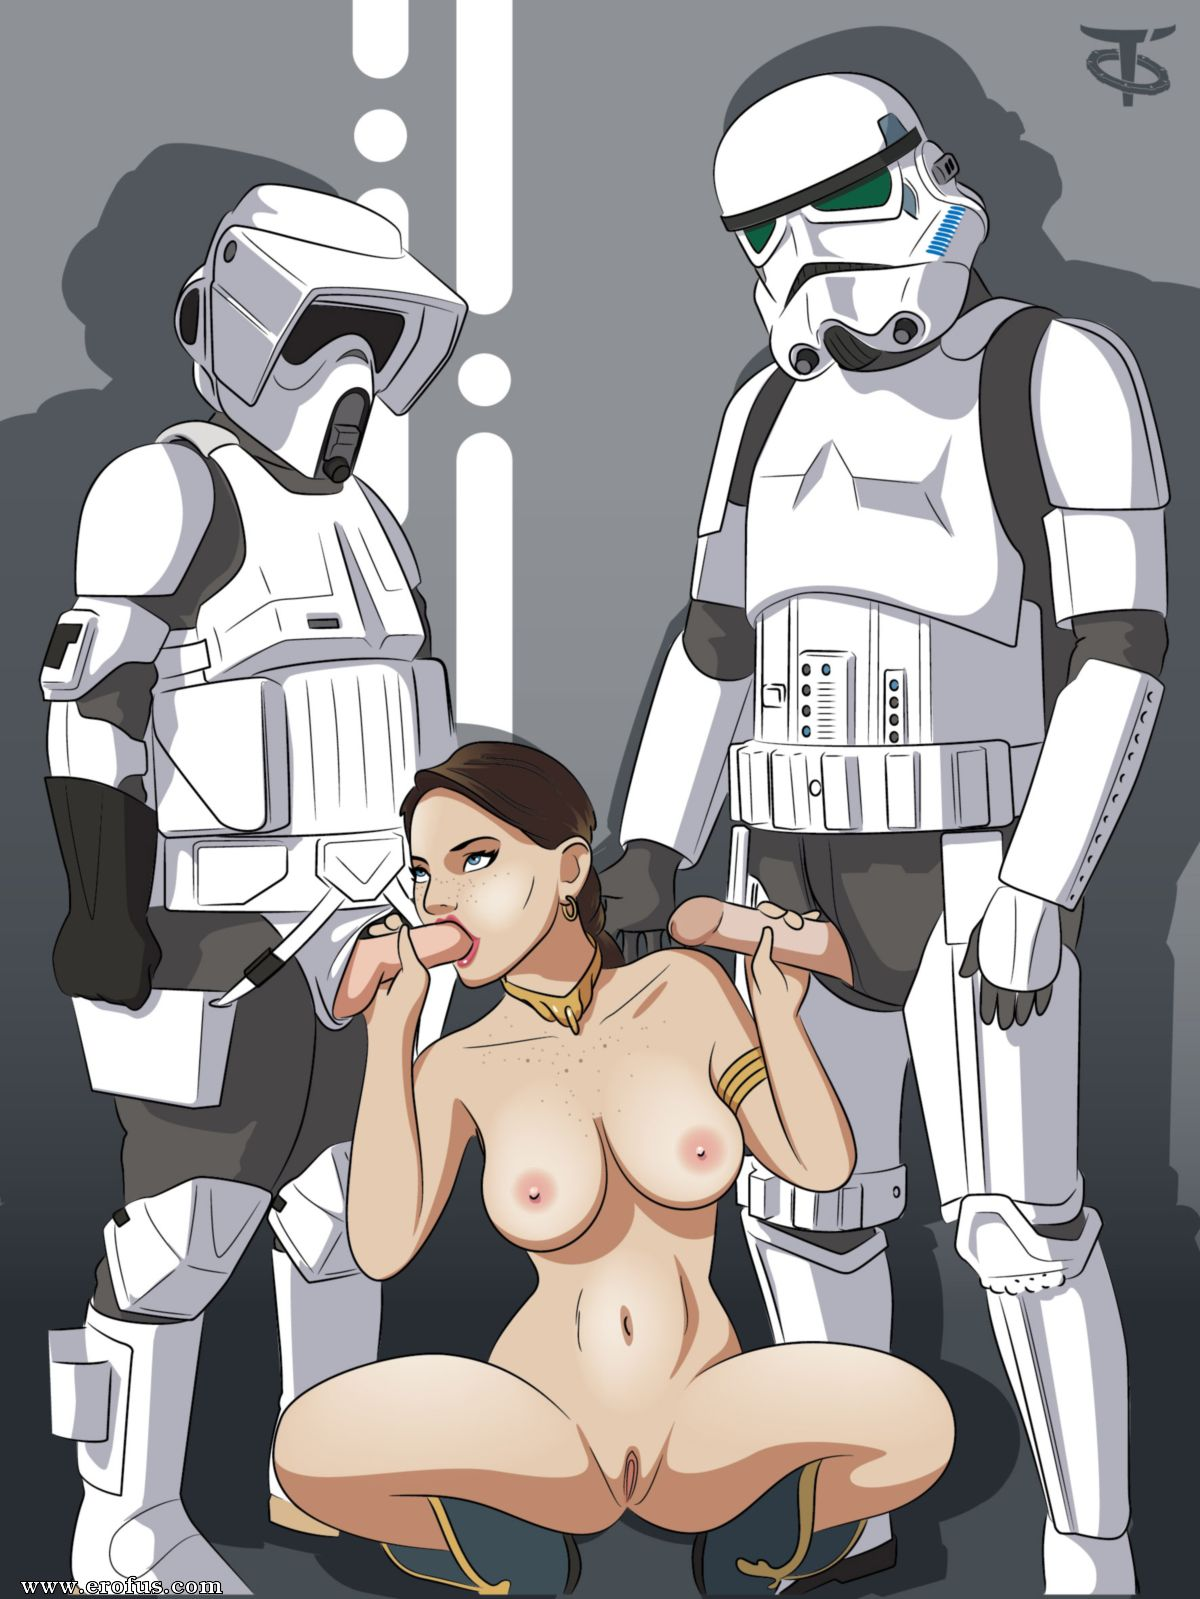 Showing xxx images for star wars female stormtrooper porn xxx